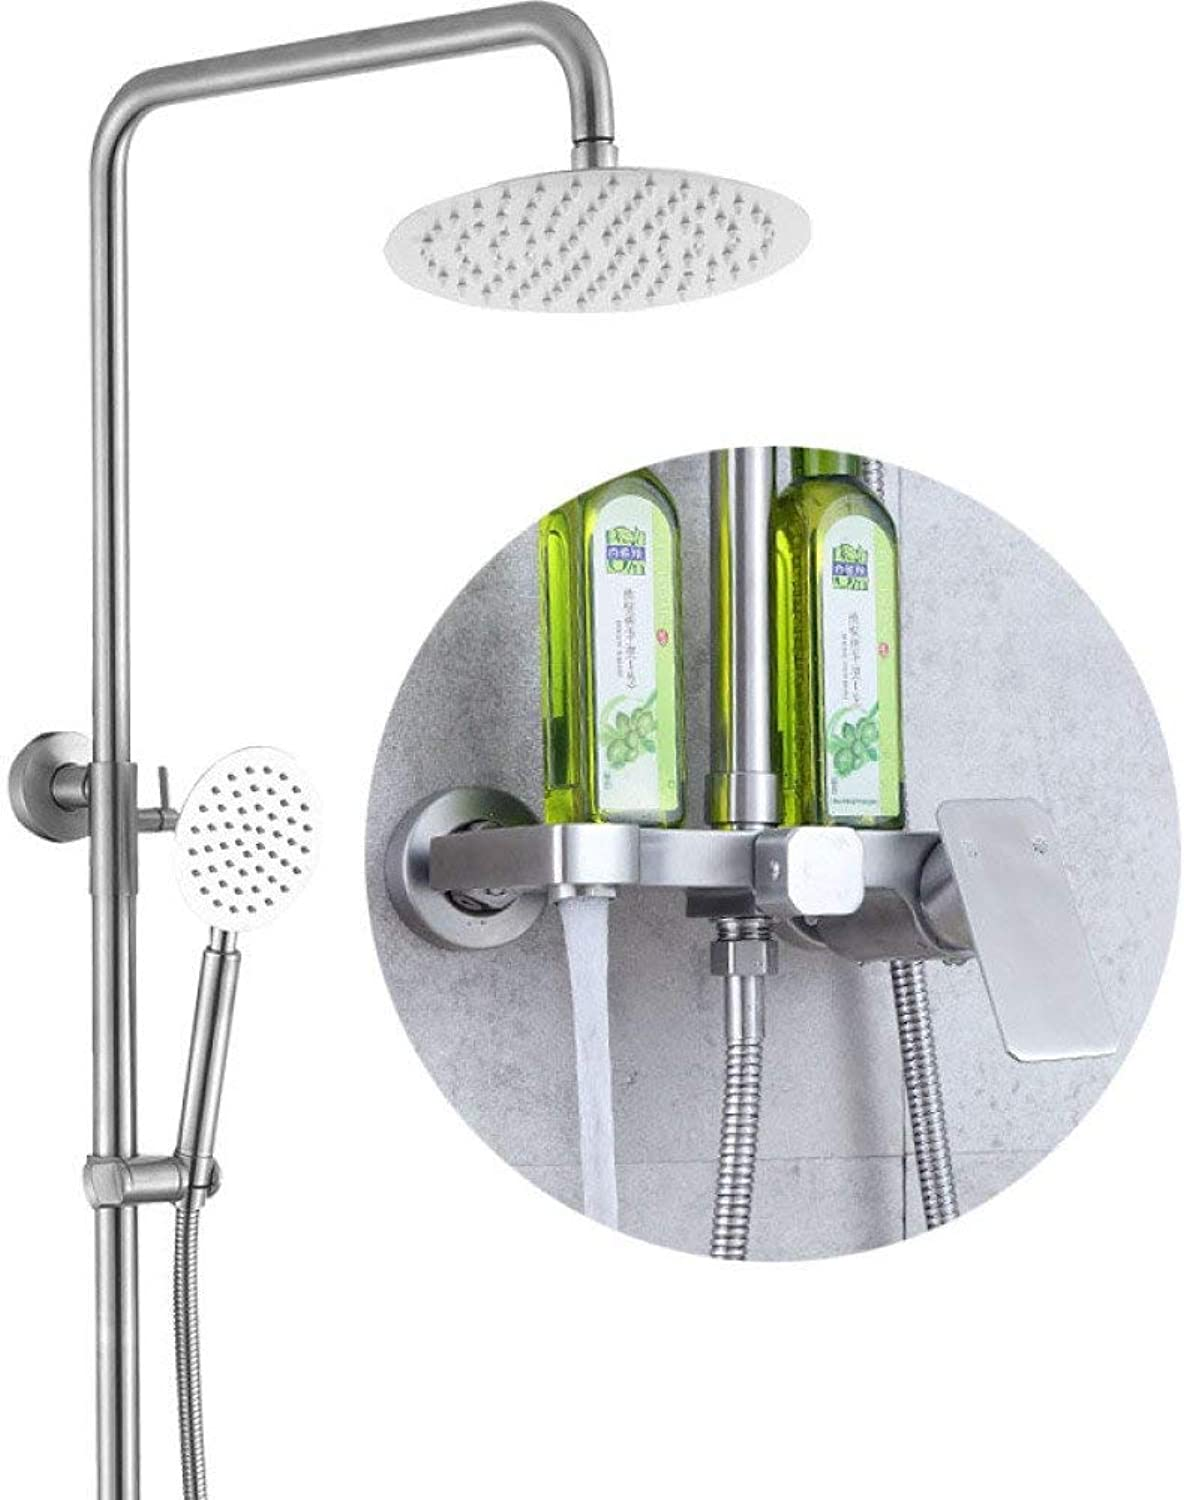 Shower Set Mixer Shower Faucet,Silver Household Modern Creativity Mixer Shower Shower Set Multi-Function Wall-Mounted Bathroom Shower Head.